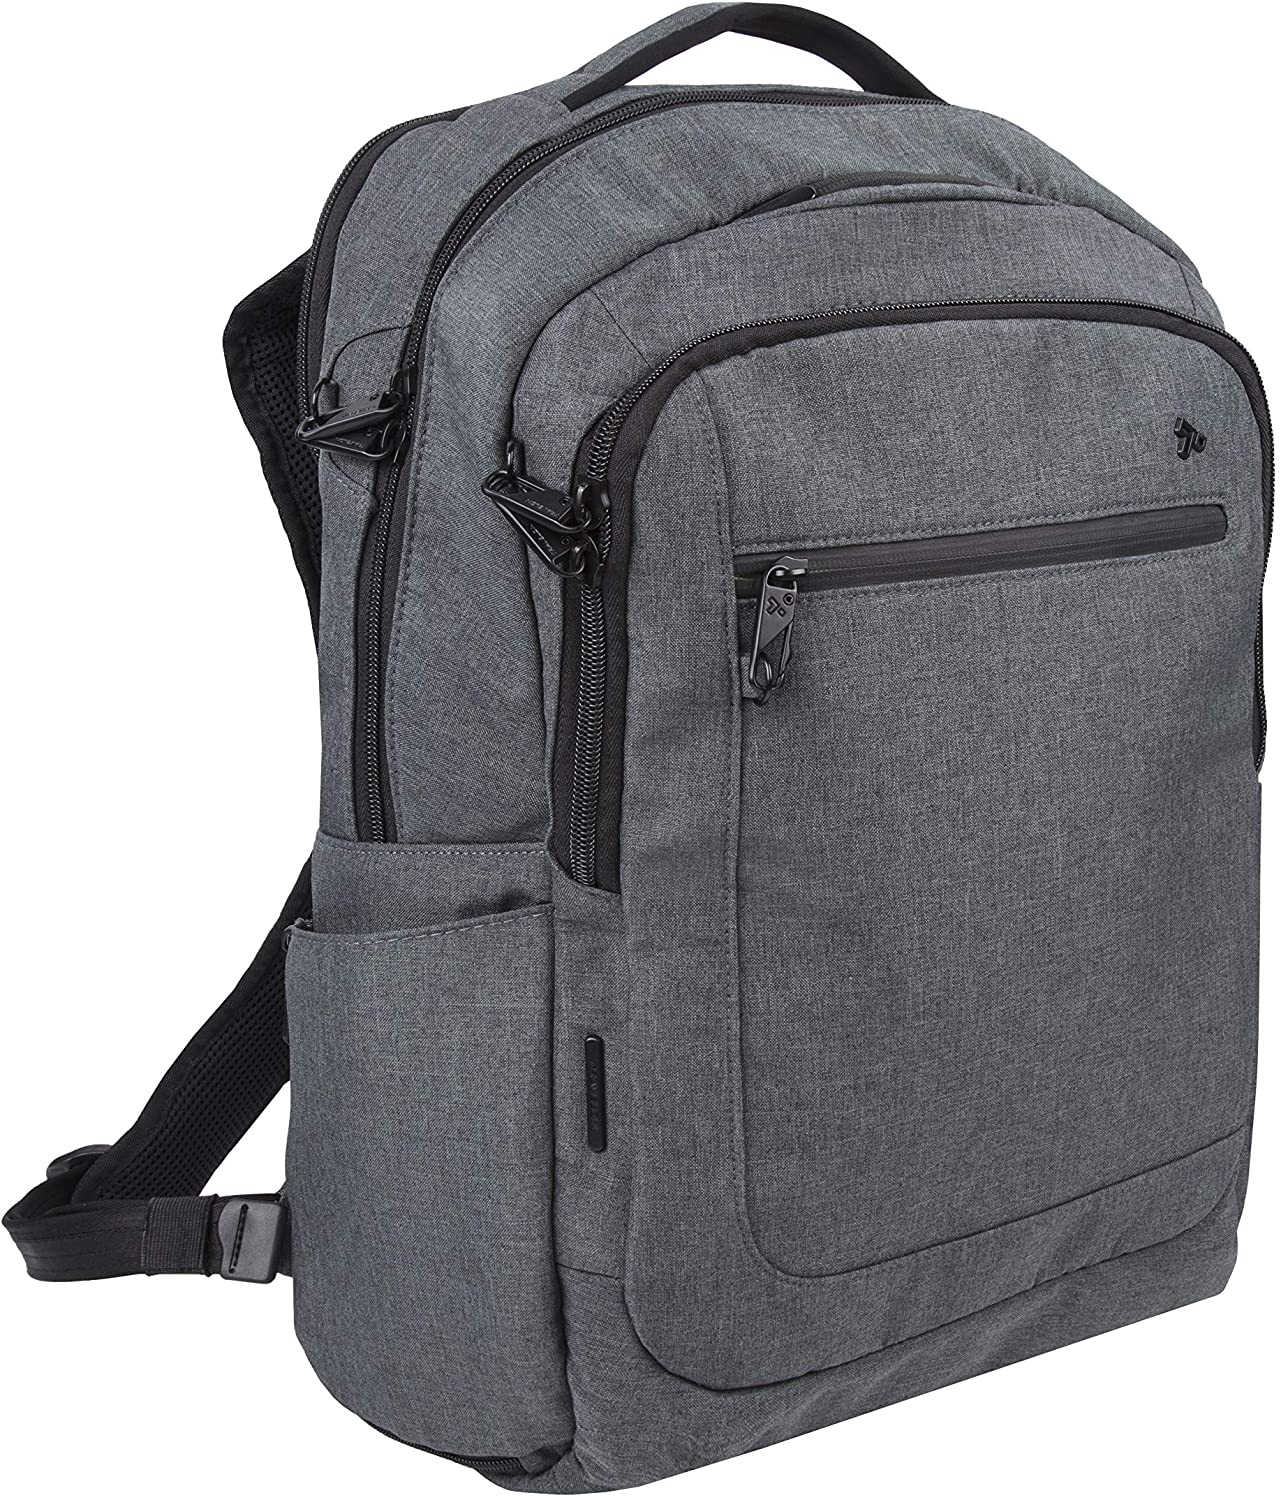 Travelon Anti-Theft Urban Backpack, Slate, One Size